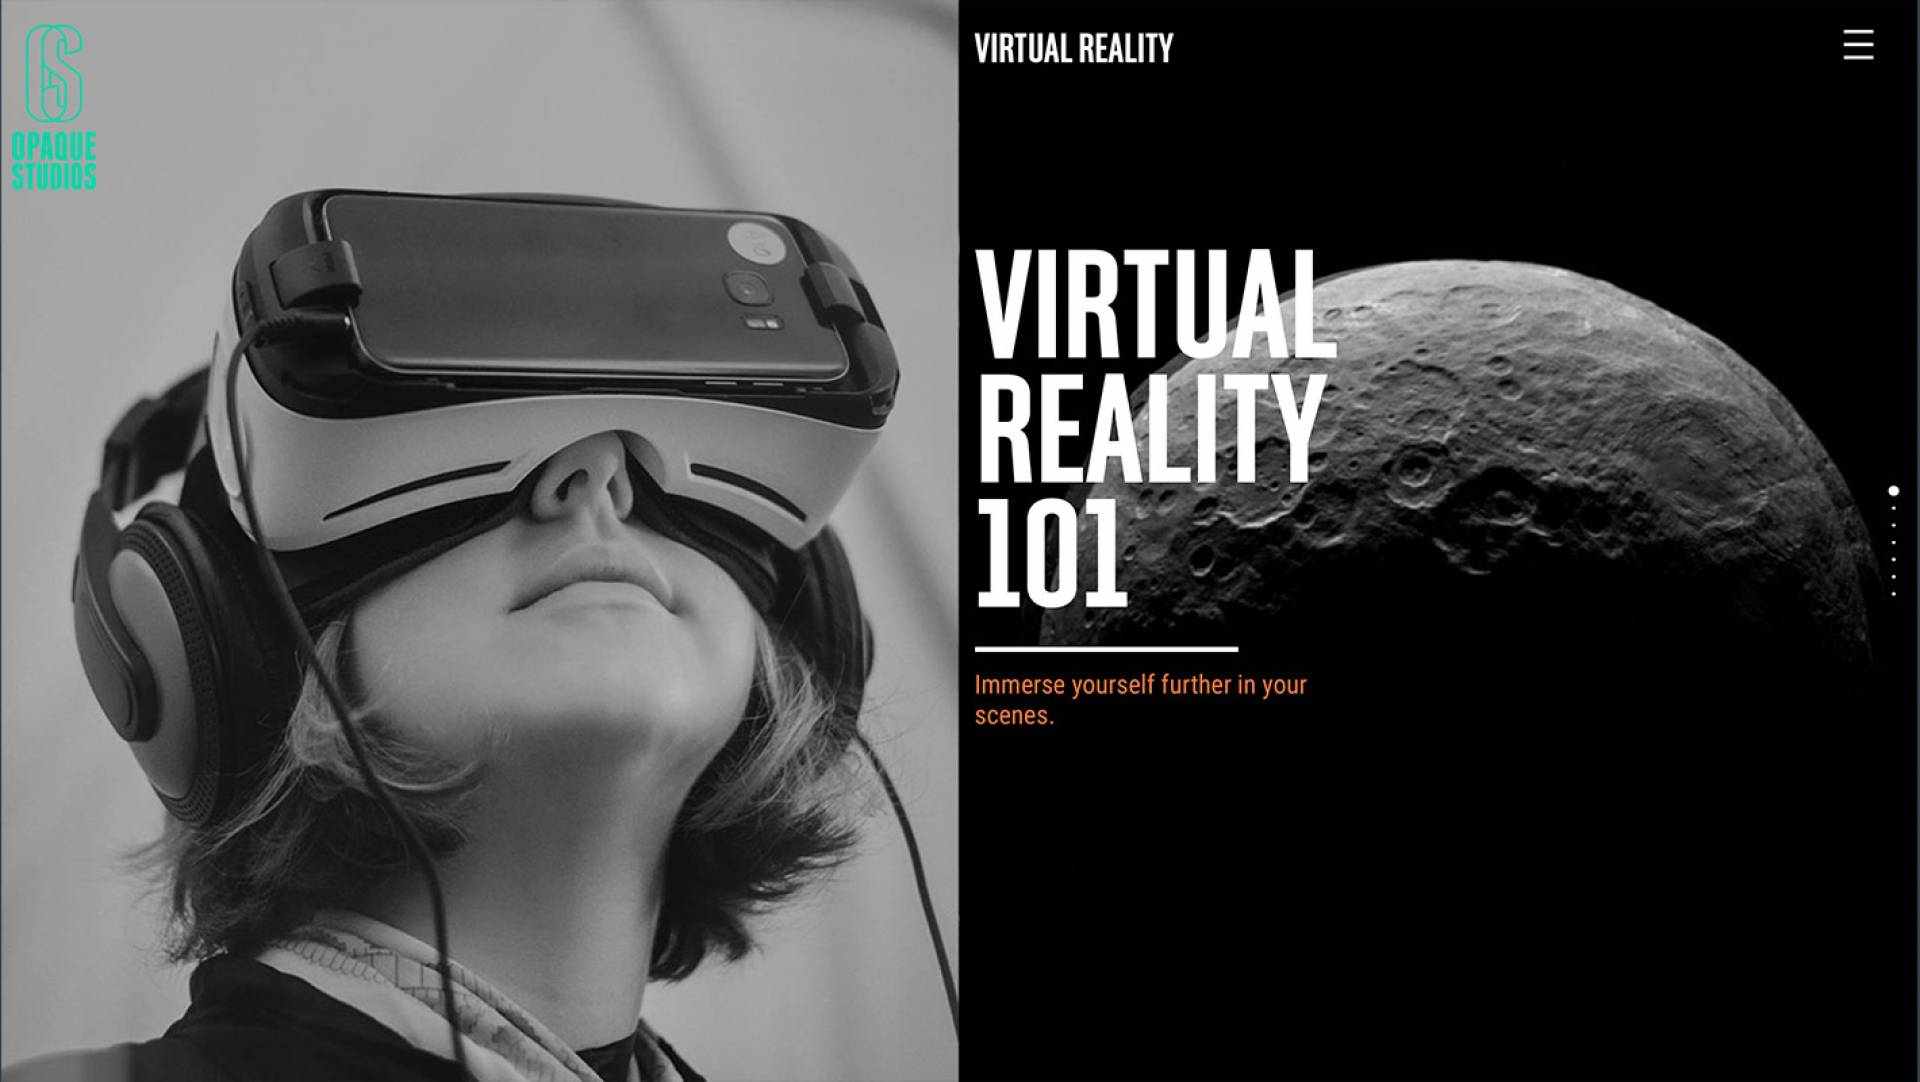 Visual Identity Designers & Web Developers Melbourne - Opaque Studios Virtual Reality